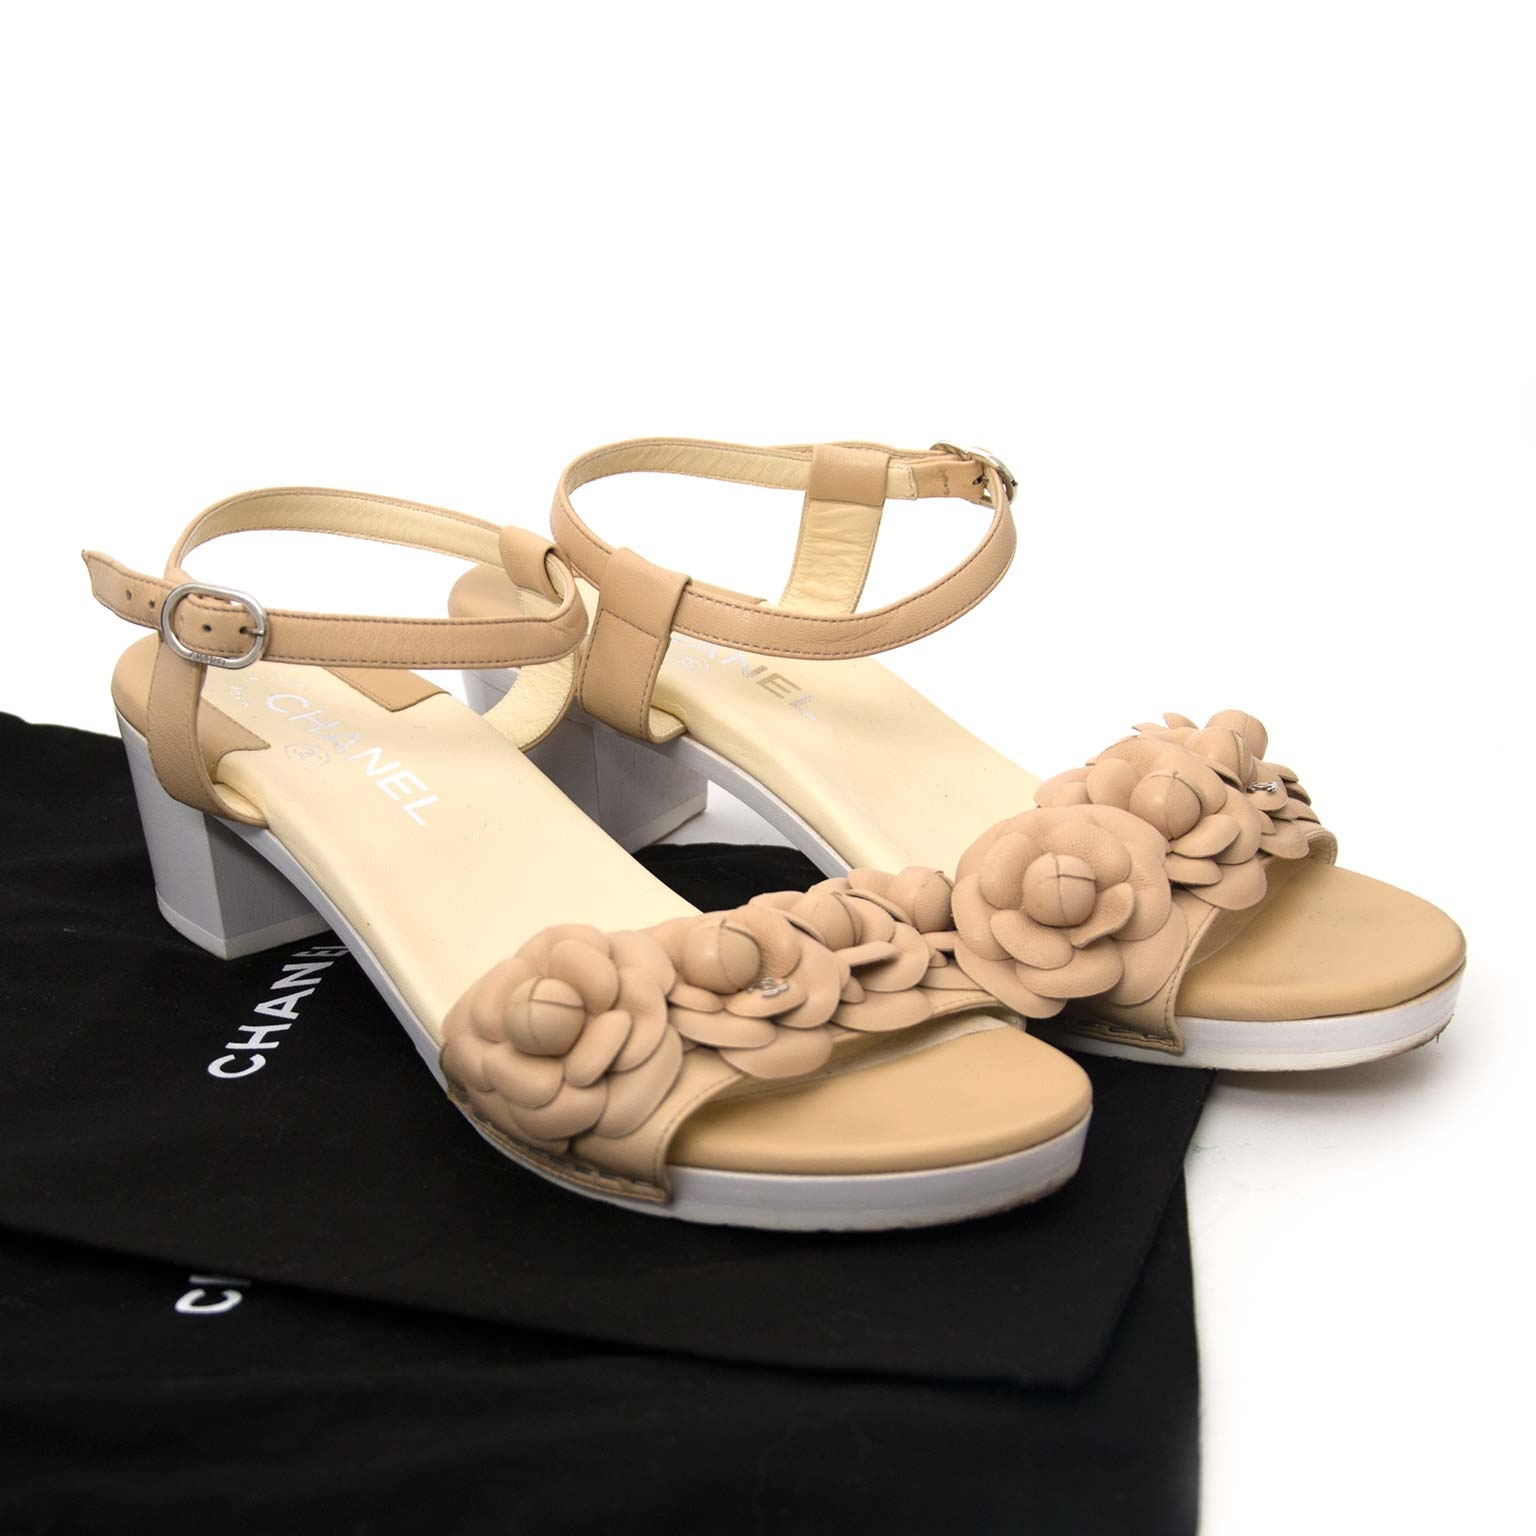 shop safe online Chanel Beige Leather Camellia Flower Sandals